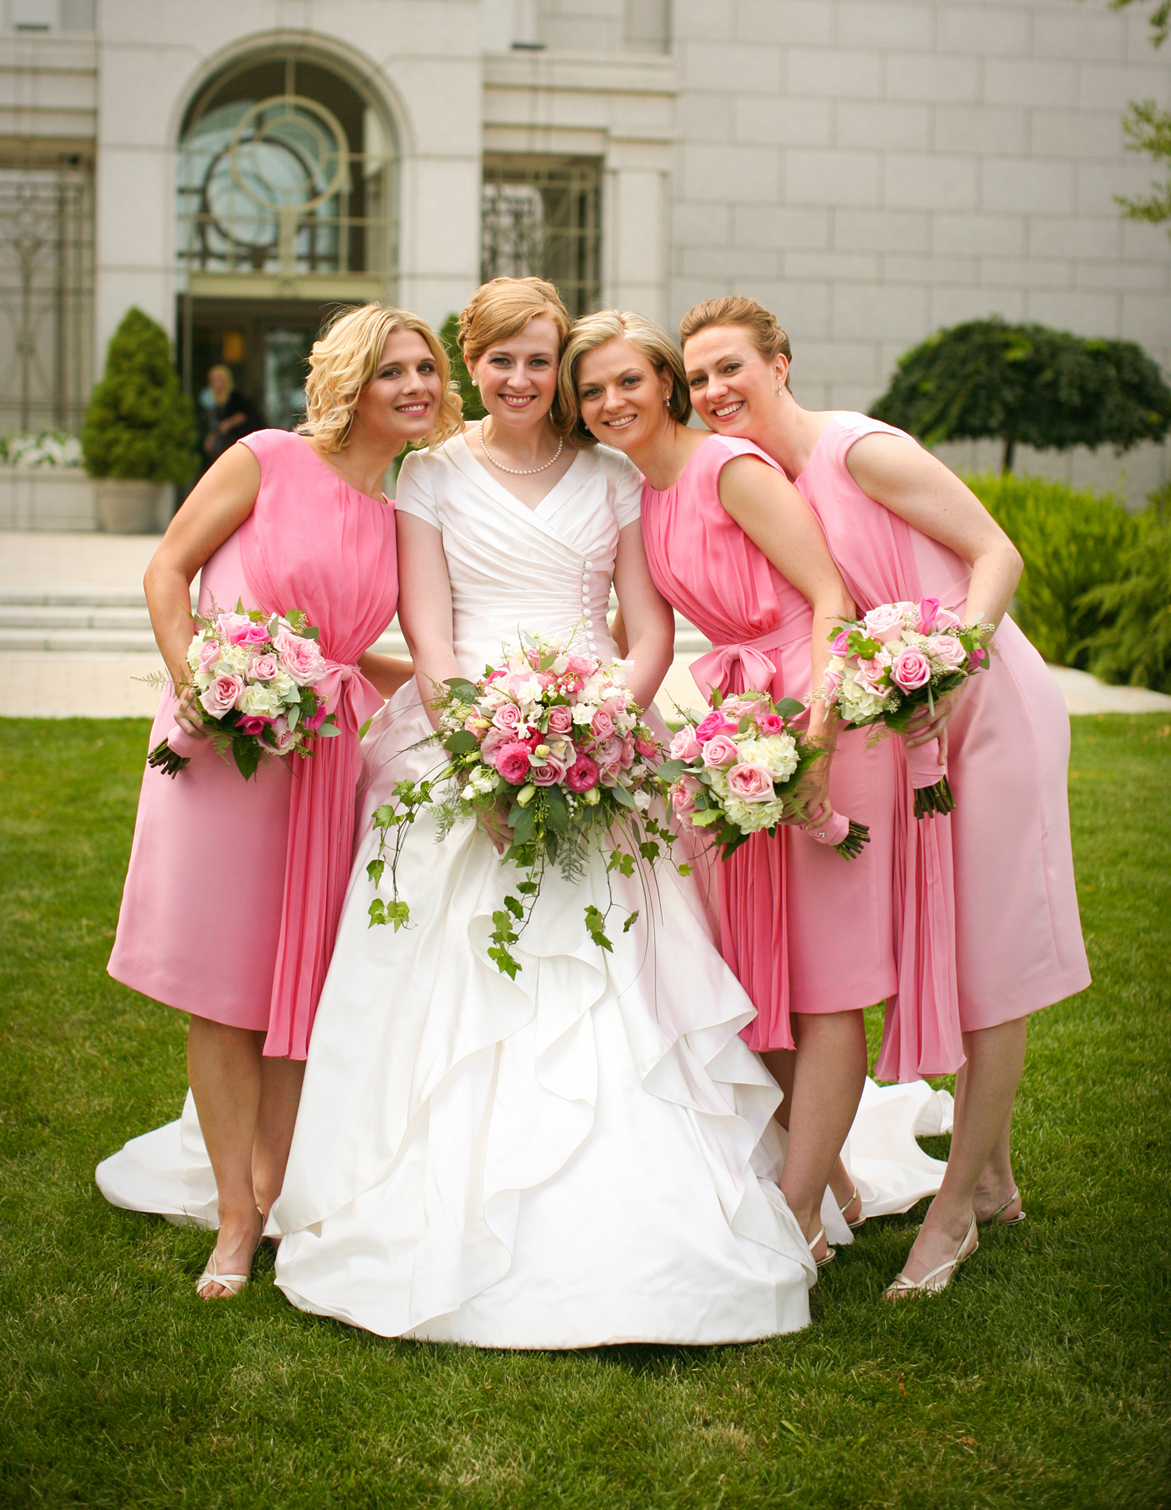 Wedding dresses for brides sister : My sister and her bridesmaids